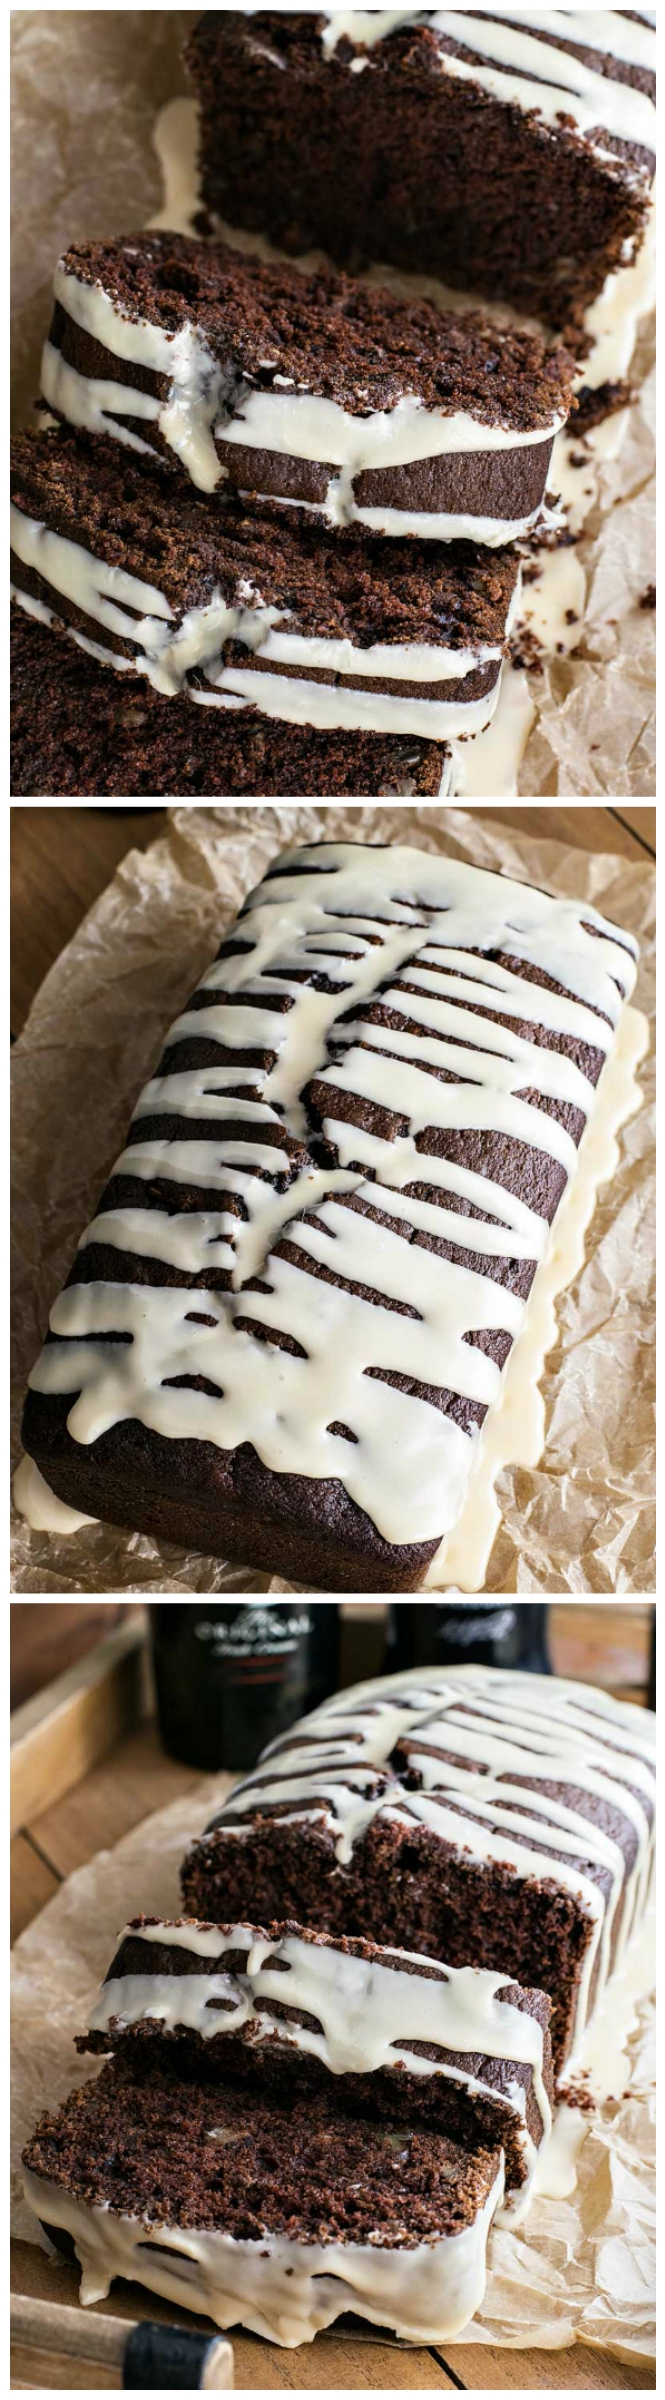 Baileys Dark Chocolate Guinness Bread - Rich and dark chocolate Guinness bread laced with chocolate chips and walnuts then frosted with a sweet Baileys glaze.